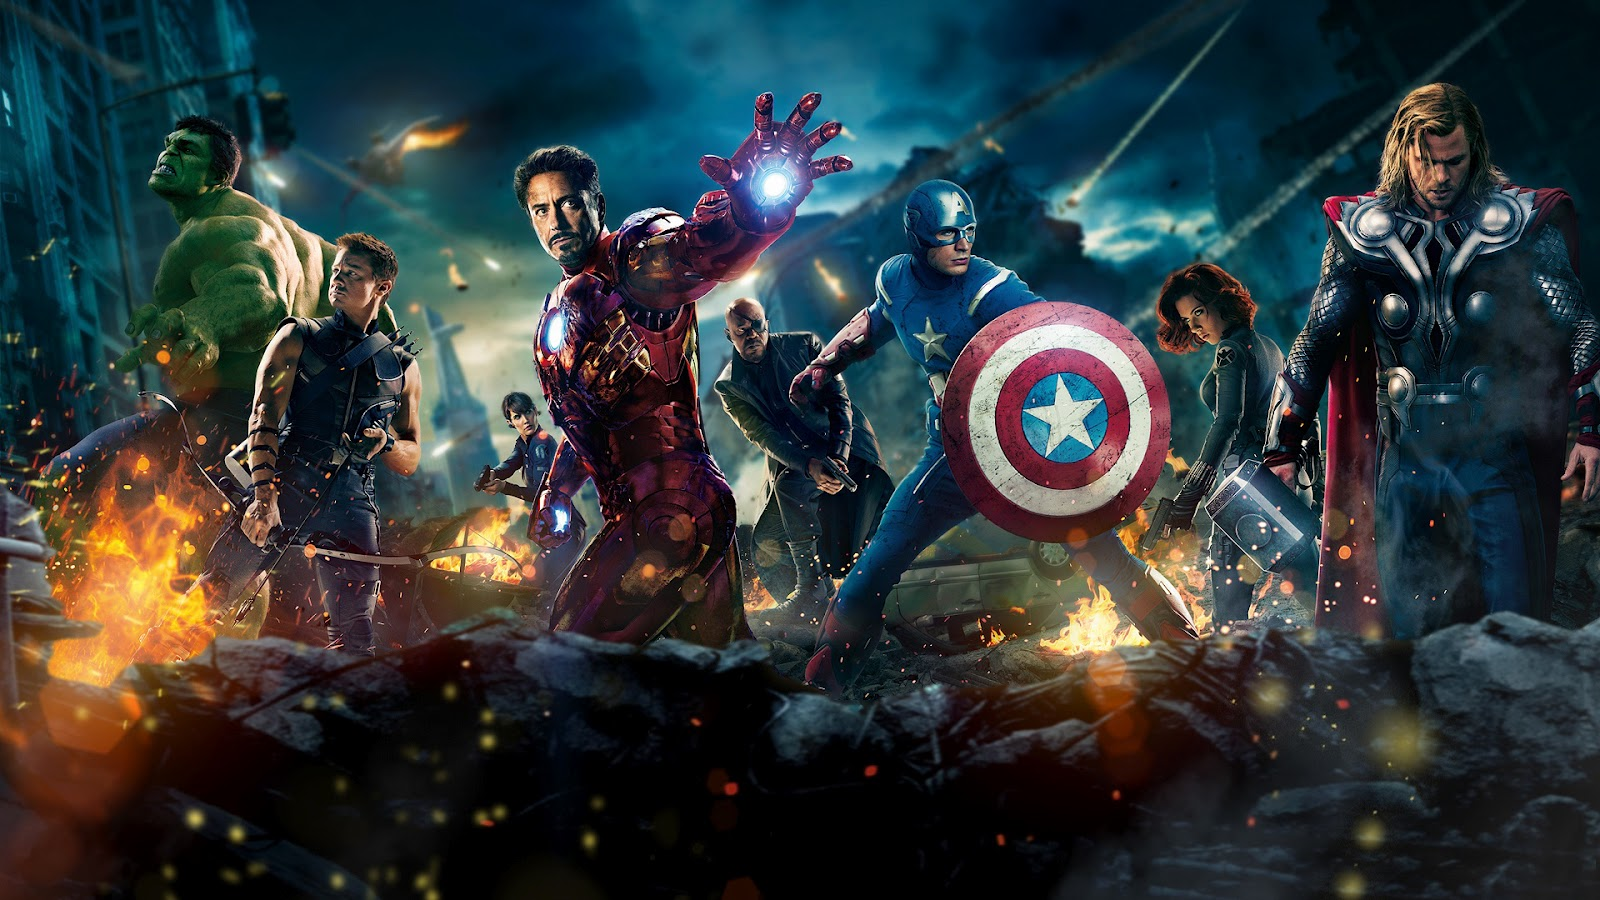 wallpapers hd los vengadores advengers hd wallpapers